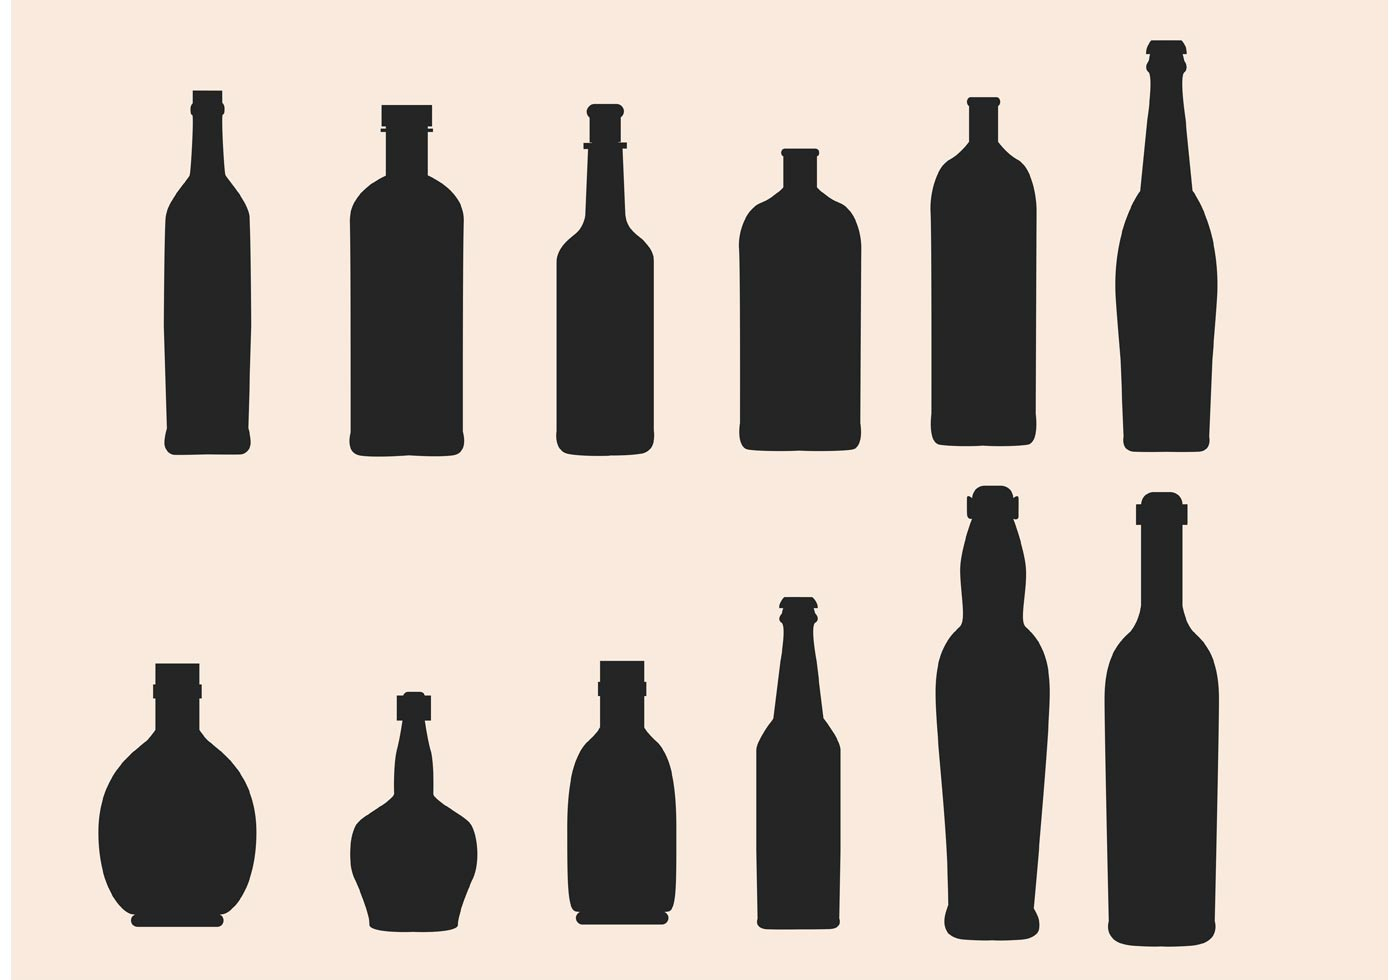 wine bottle free vector art 1673 free downloads rh vecteezy com wine bottle vector icon wine bottle vector sketch